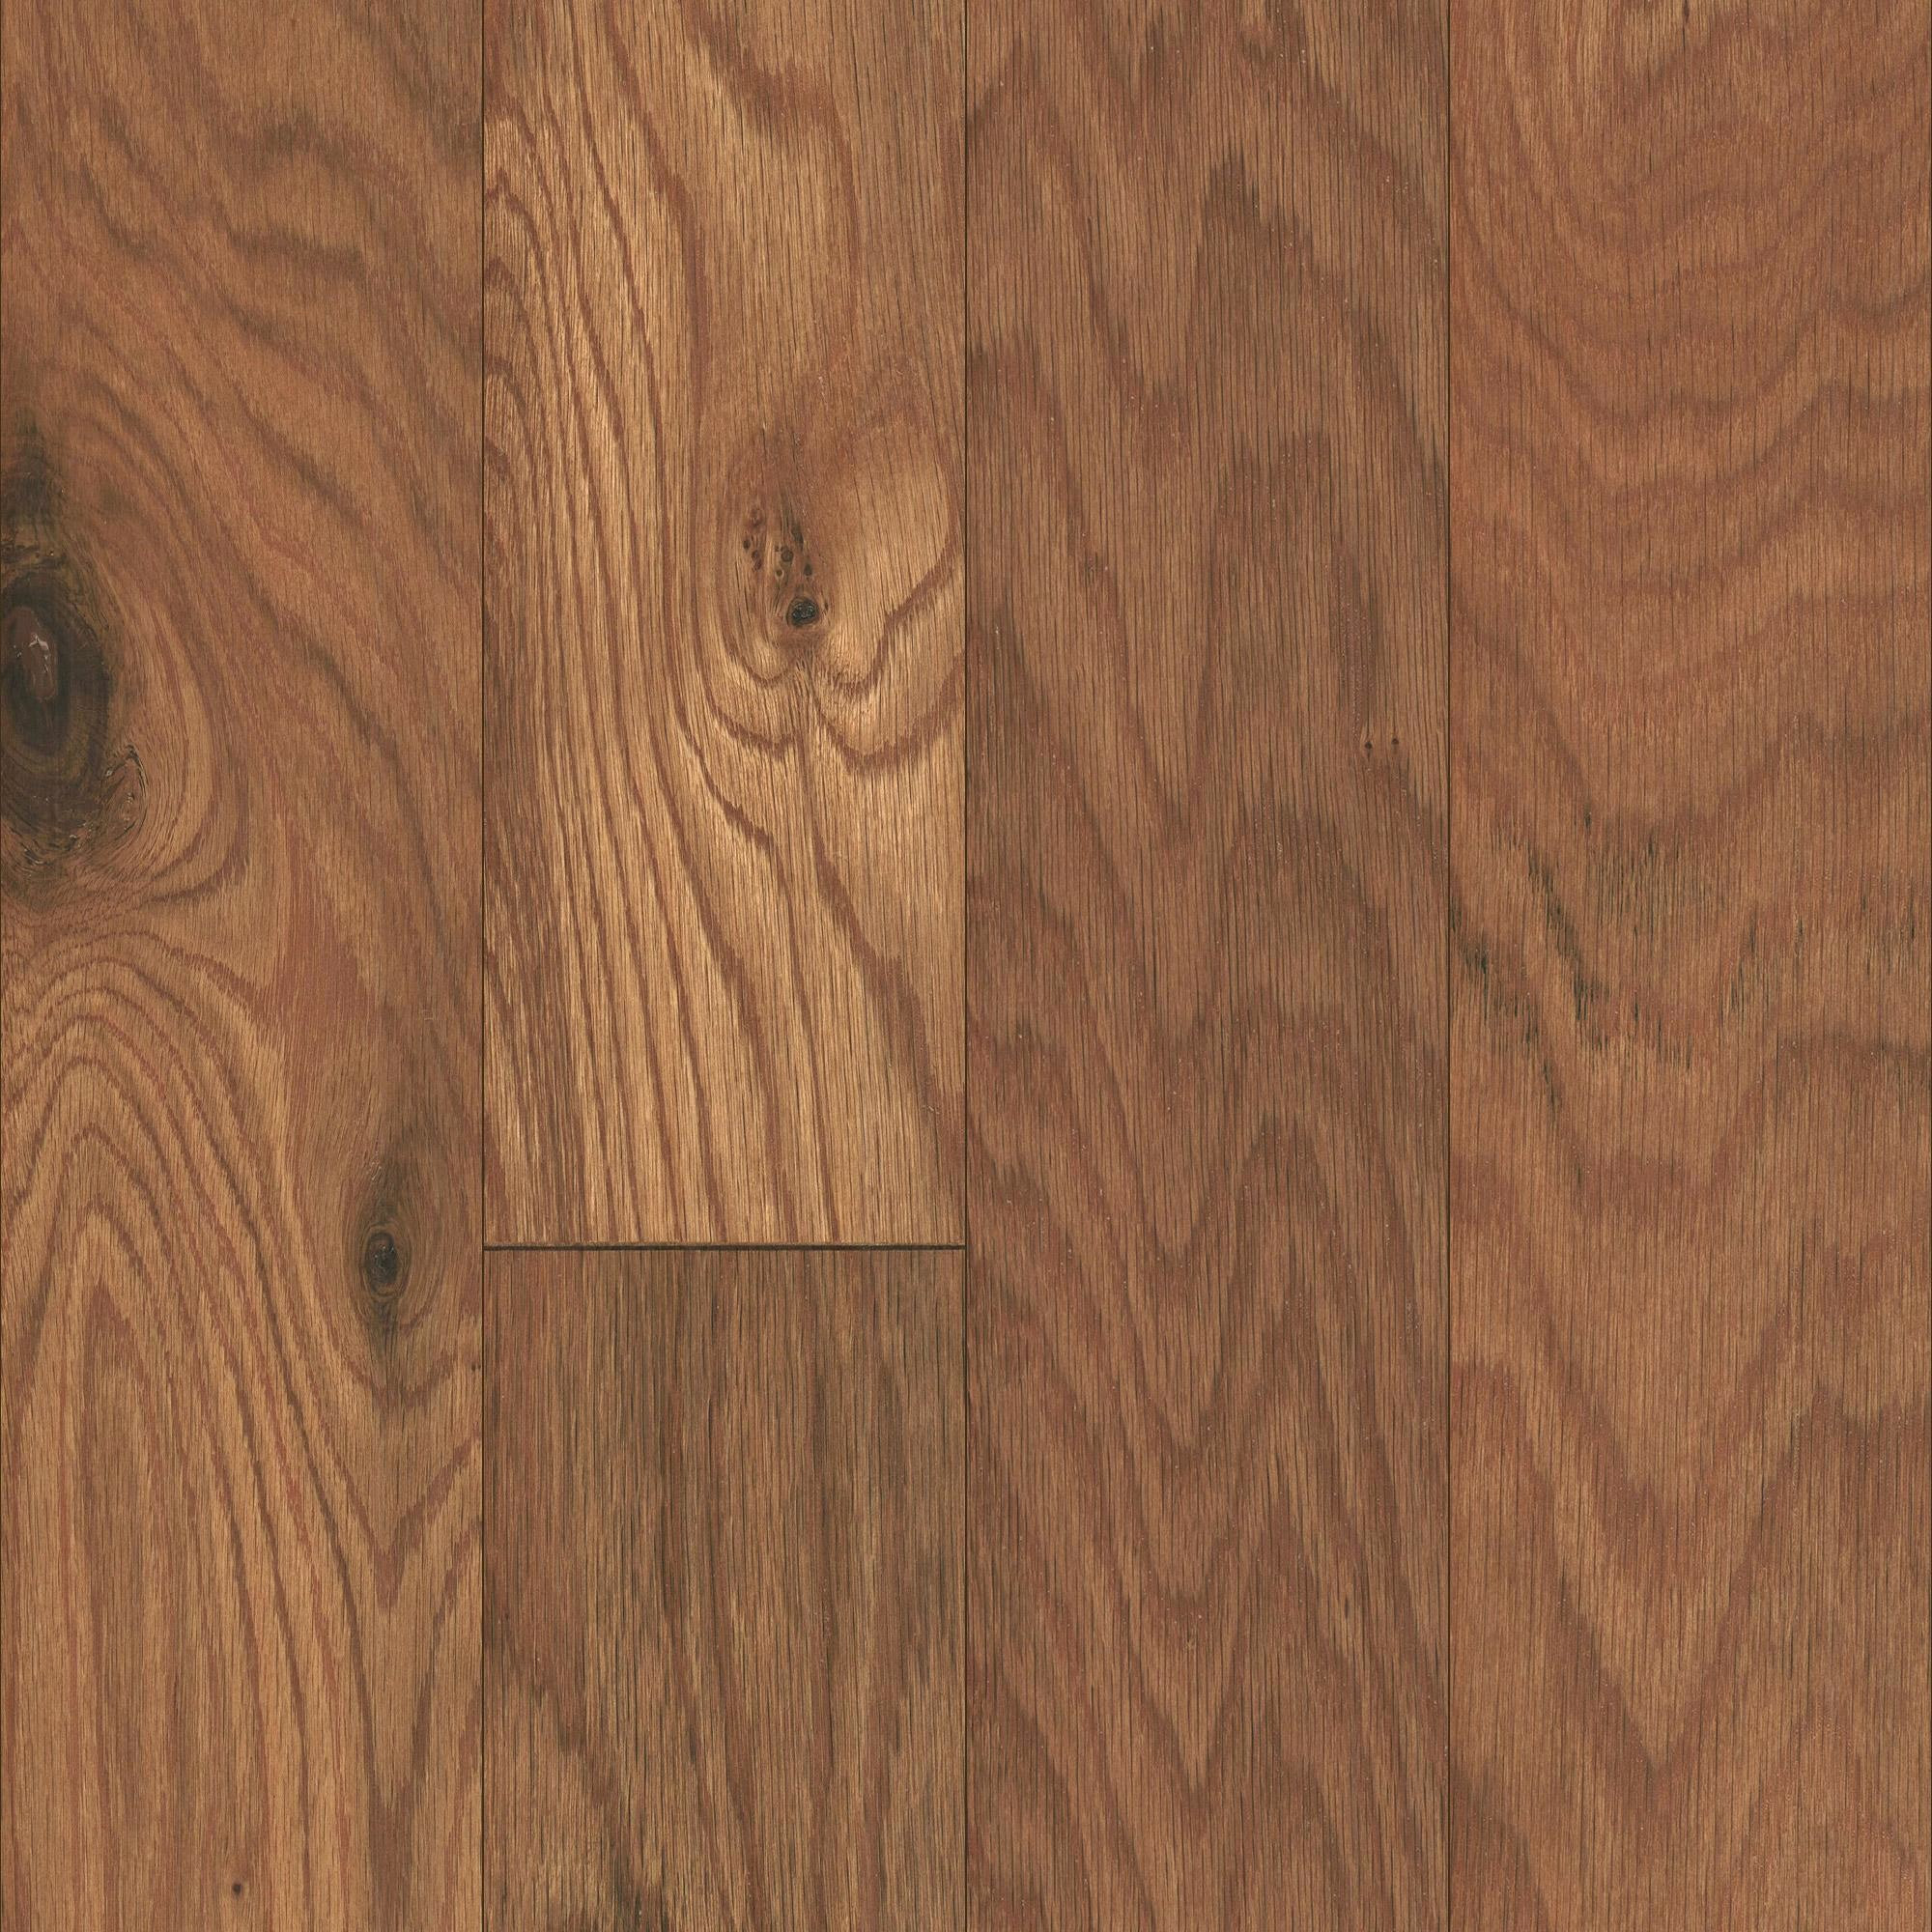 sanding and restaining hardwood floors cost of 16 fresh hardwood floor polish photos dizpos com throughout 50 fresh engineered hardwood flooring cost 50 s